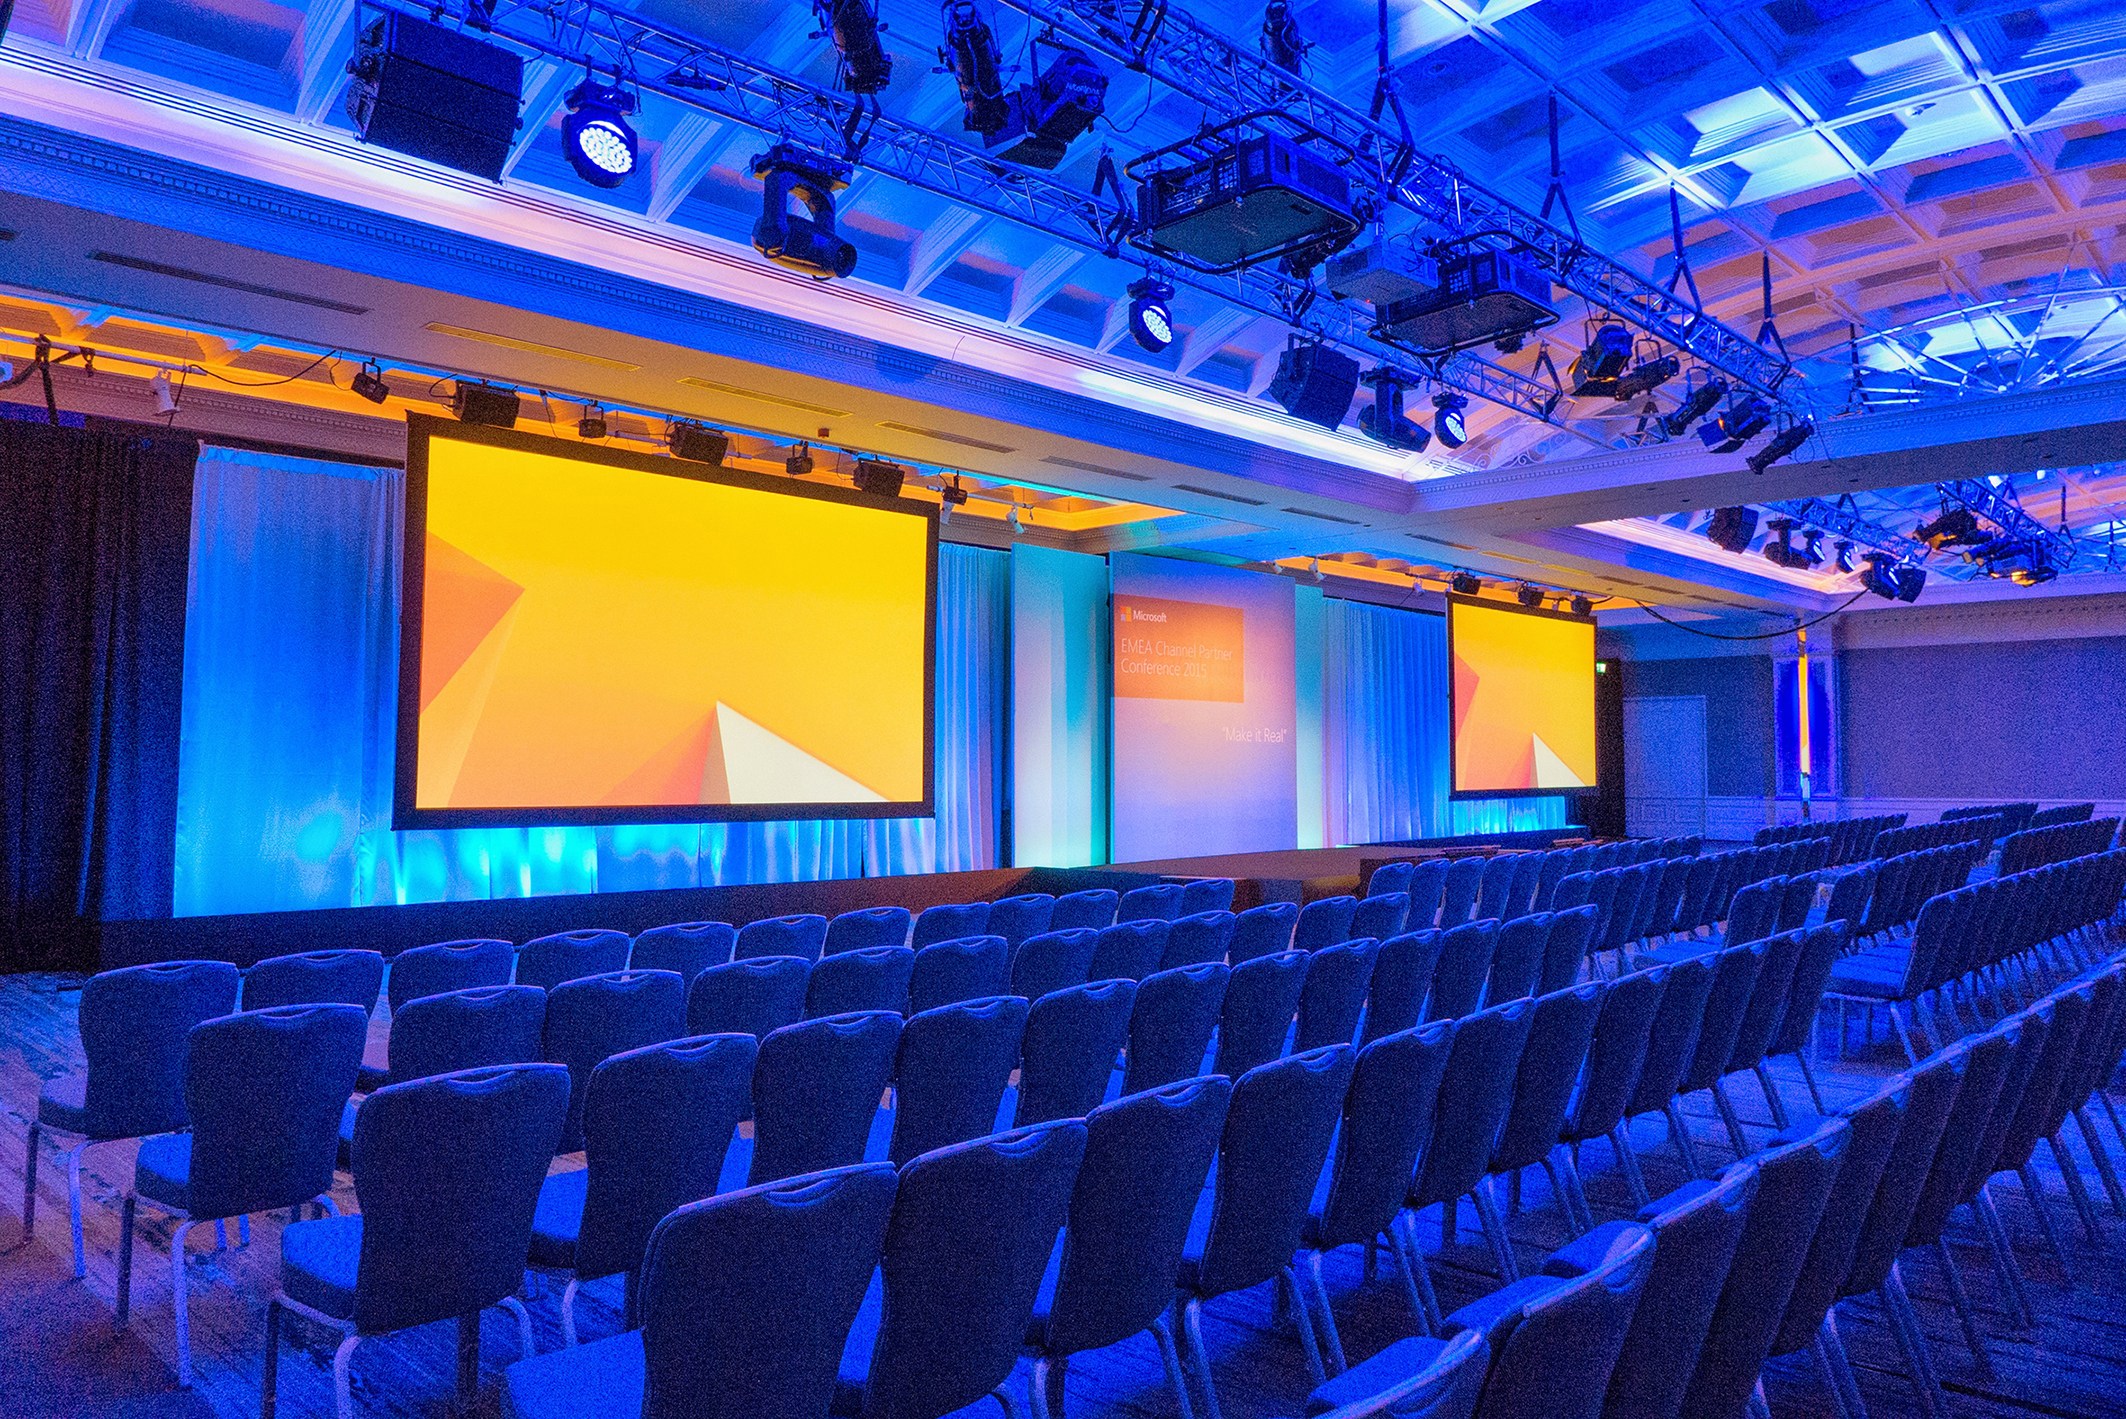 3. conference room set theatre style Clayton Hotel Burlington Road